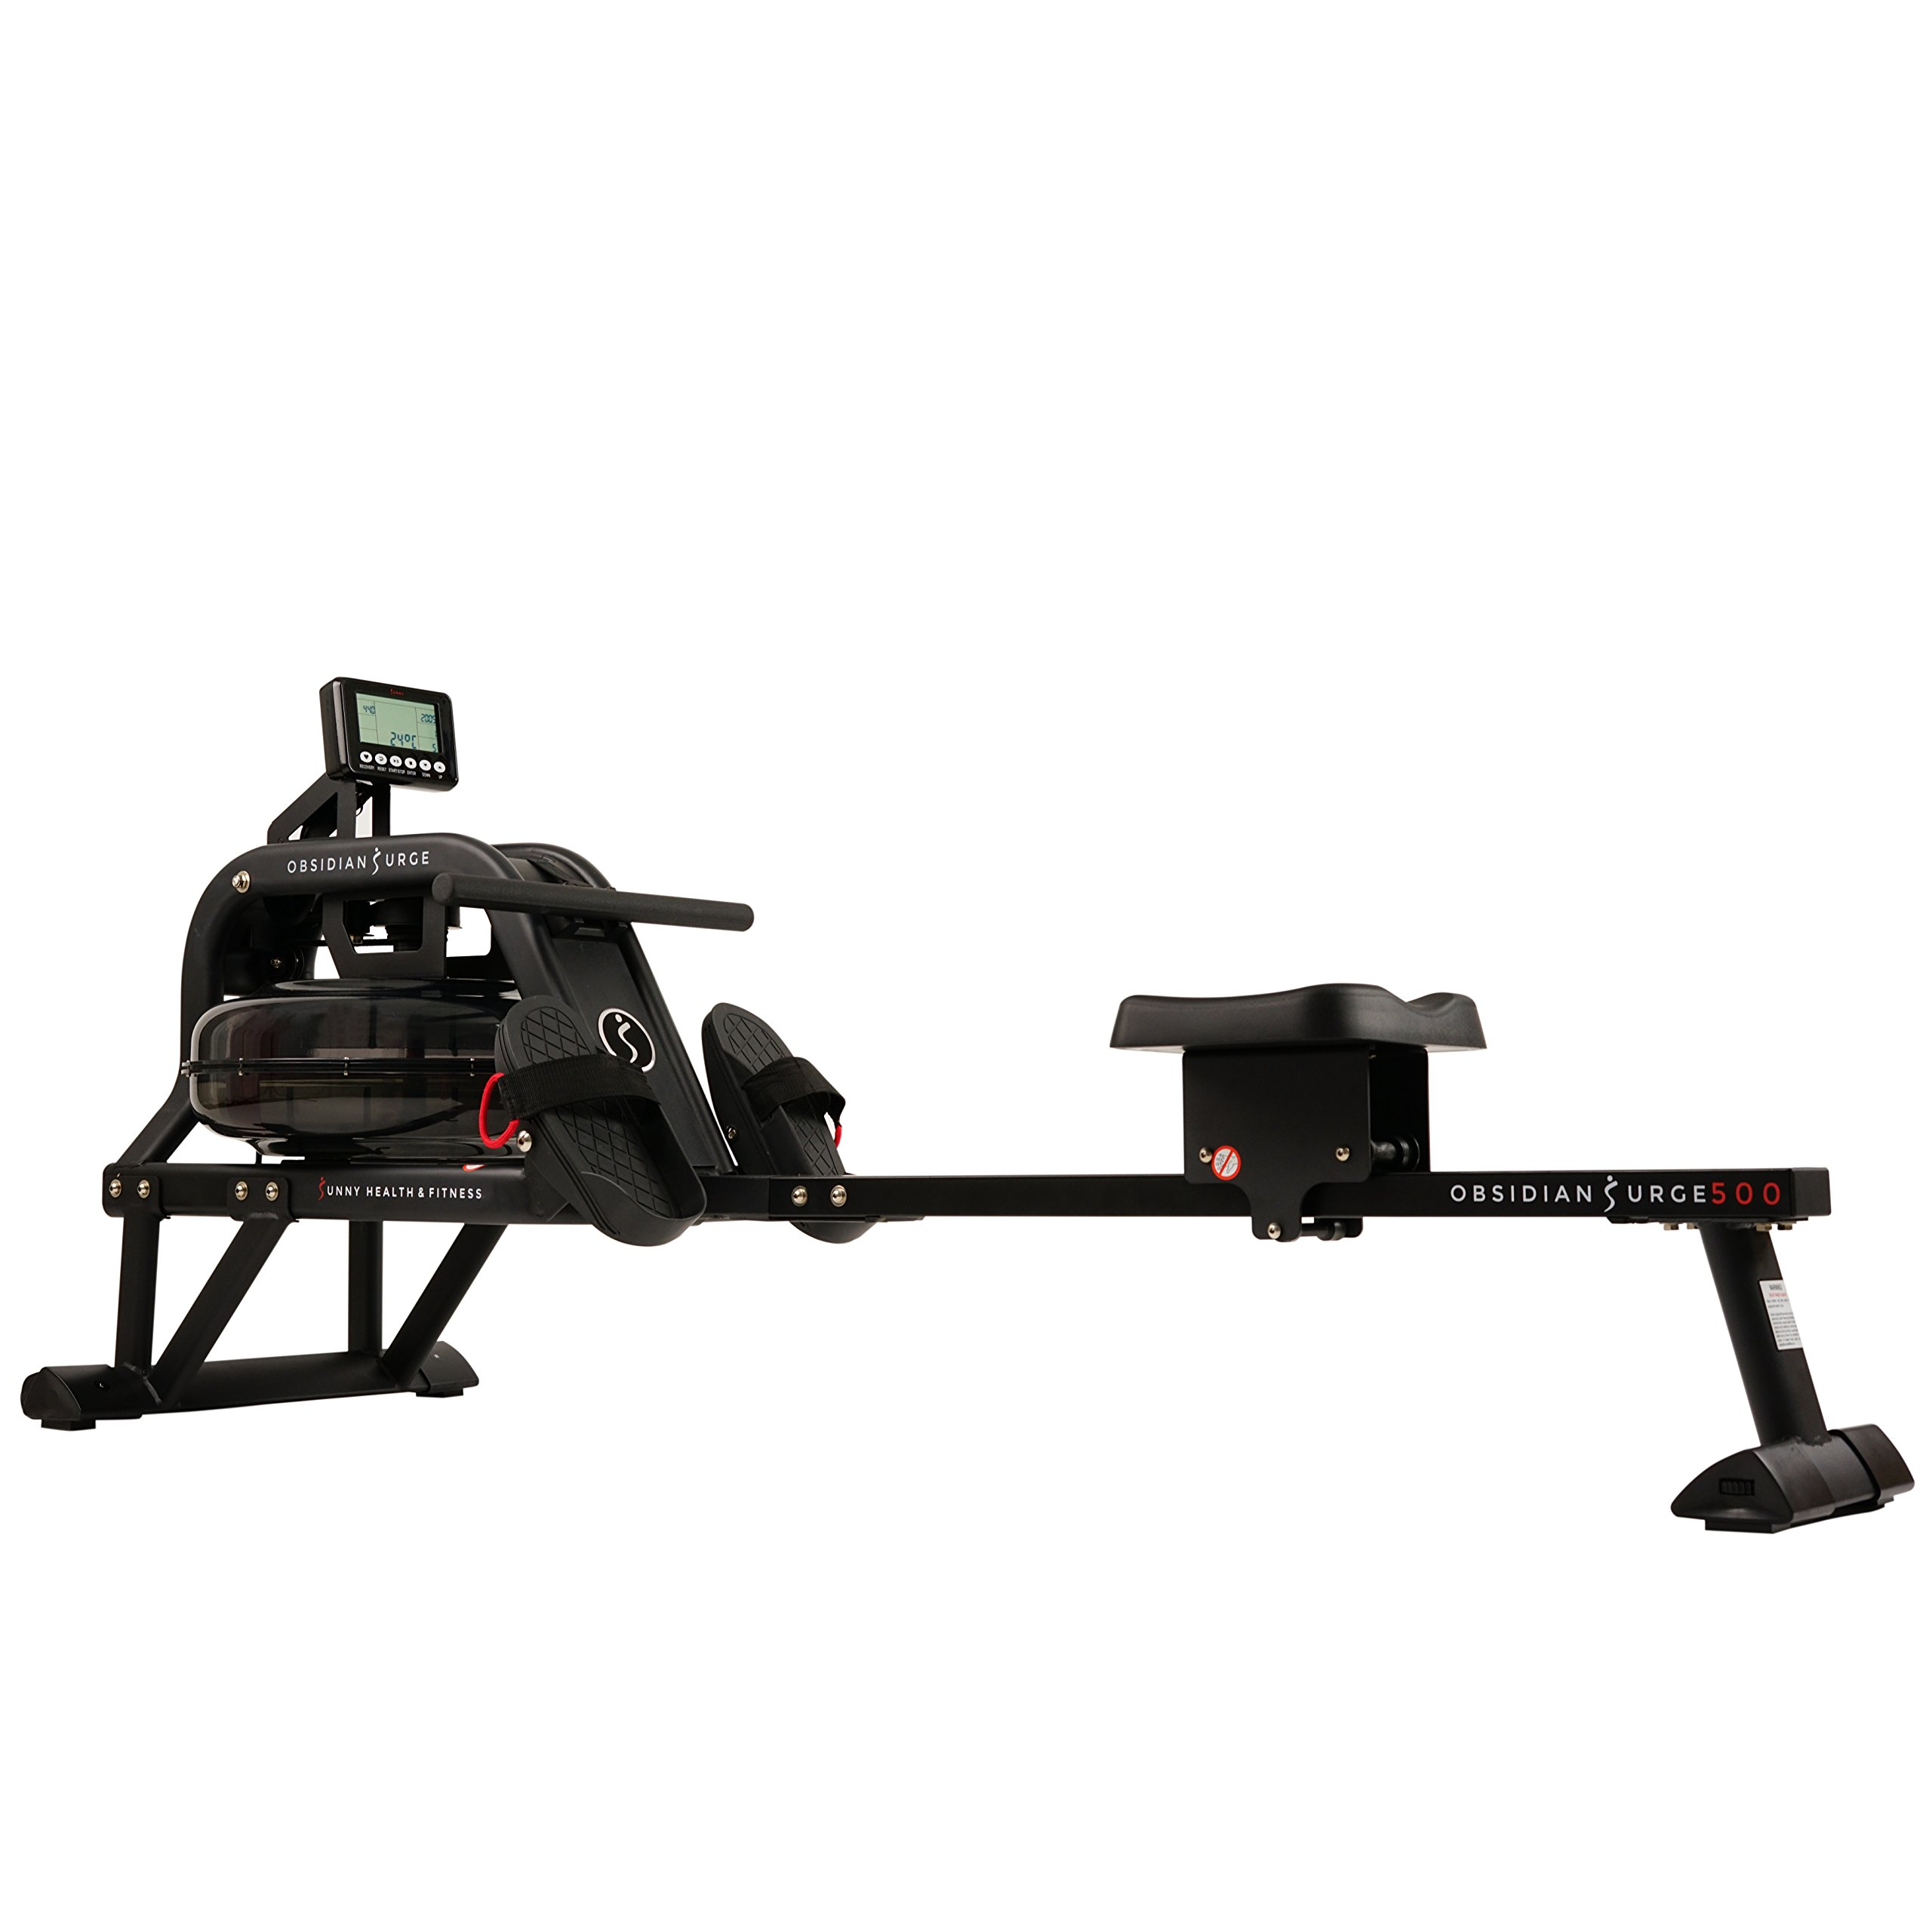 Sunny Health & Fitness Water Rowing Machine Rower w/ LCD Monitor - Obsidian SF-RW5713 by Sunny Health & Fitness